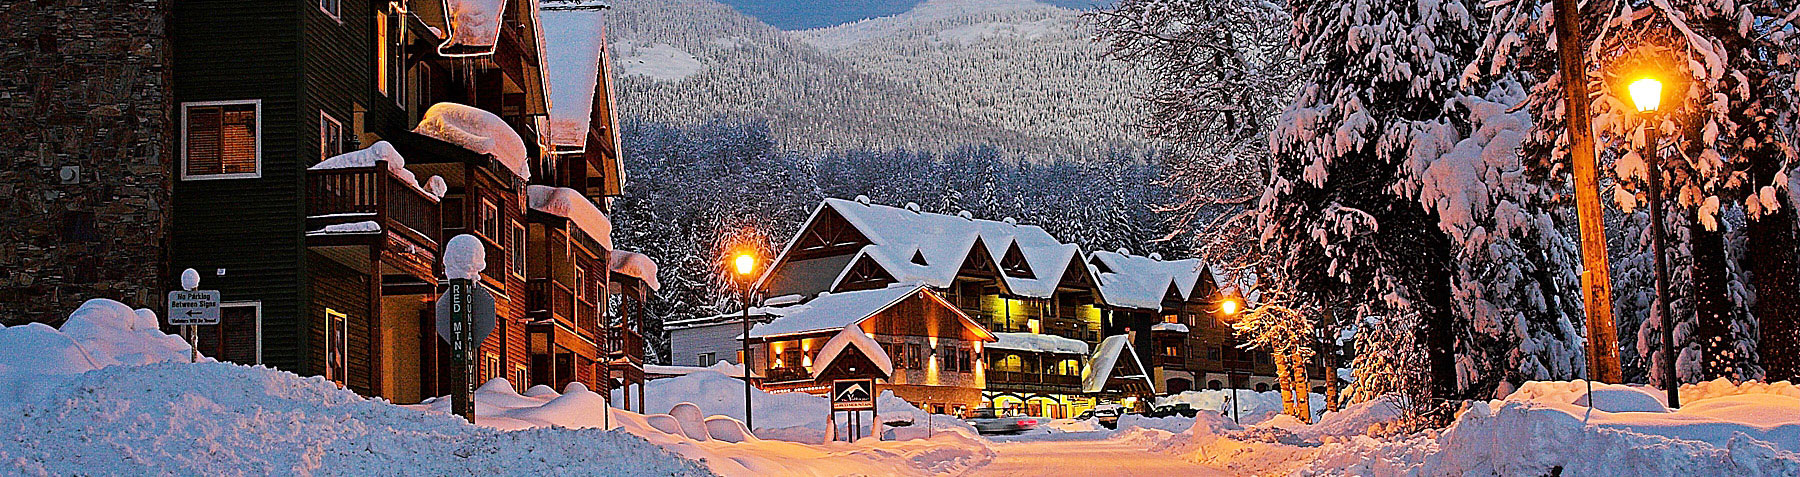 Red Mountain Village at night in Rossland BC